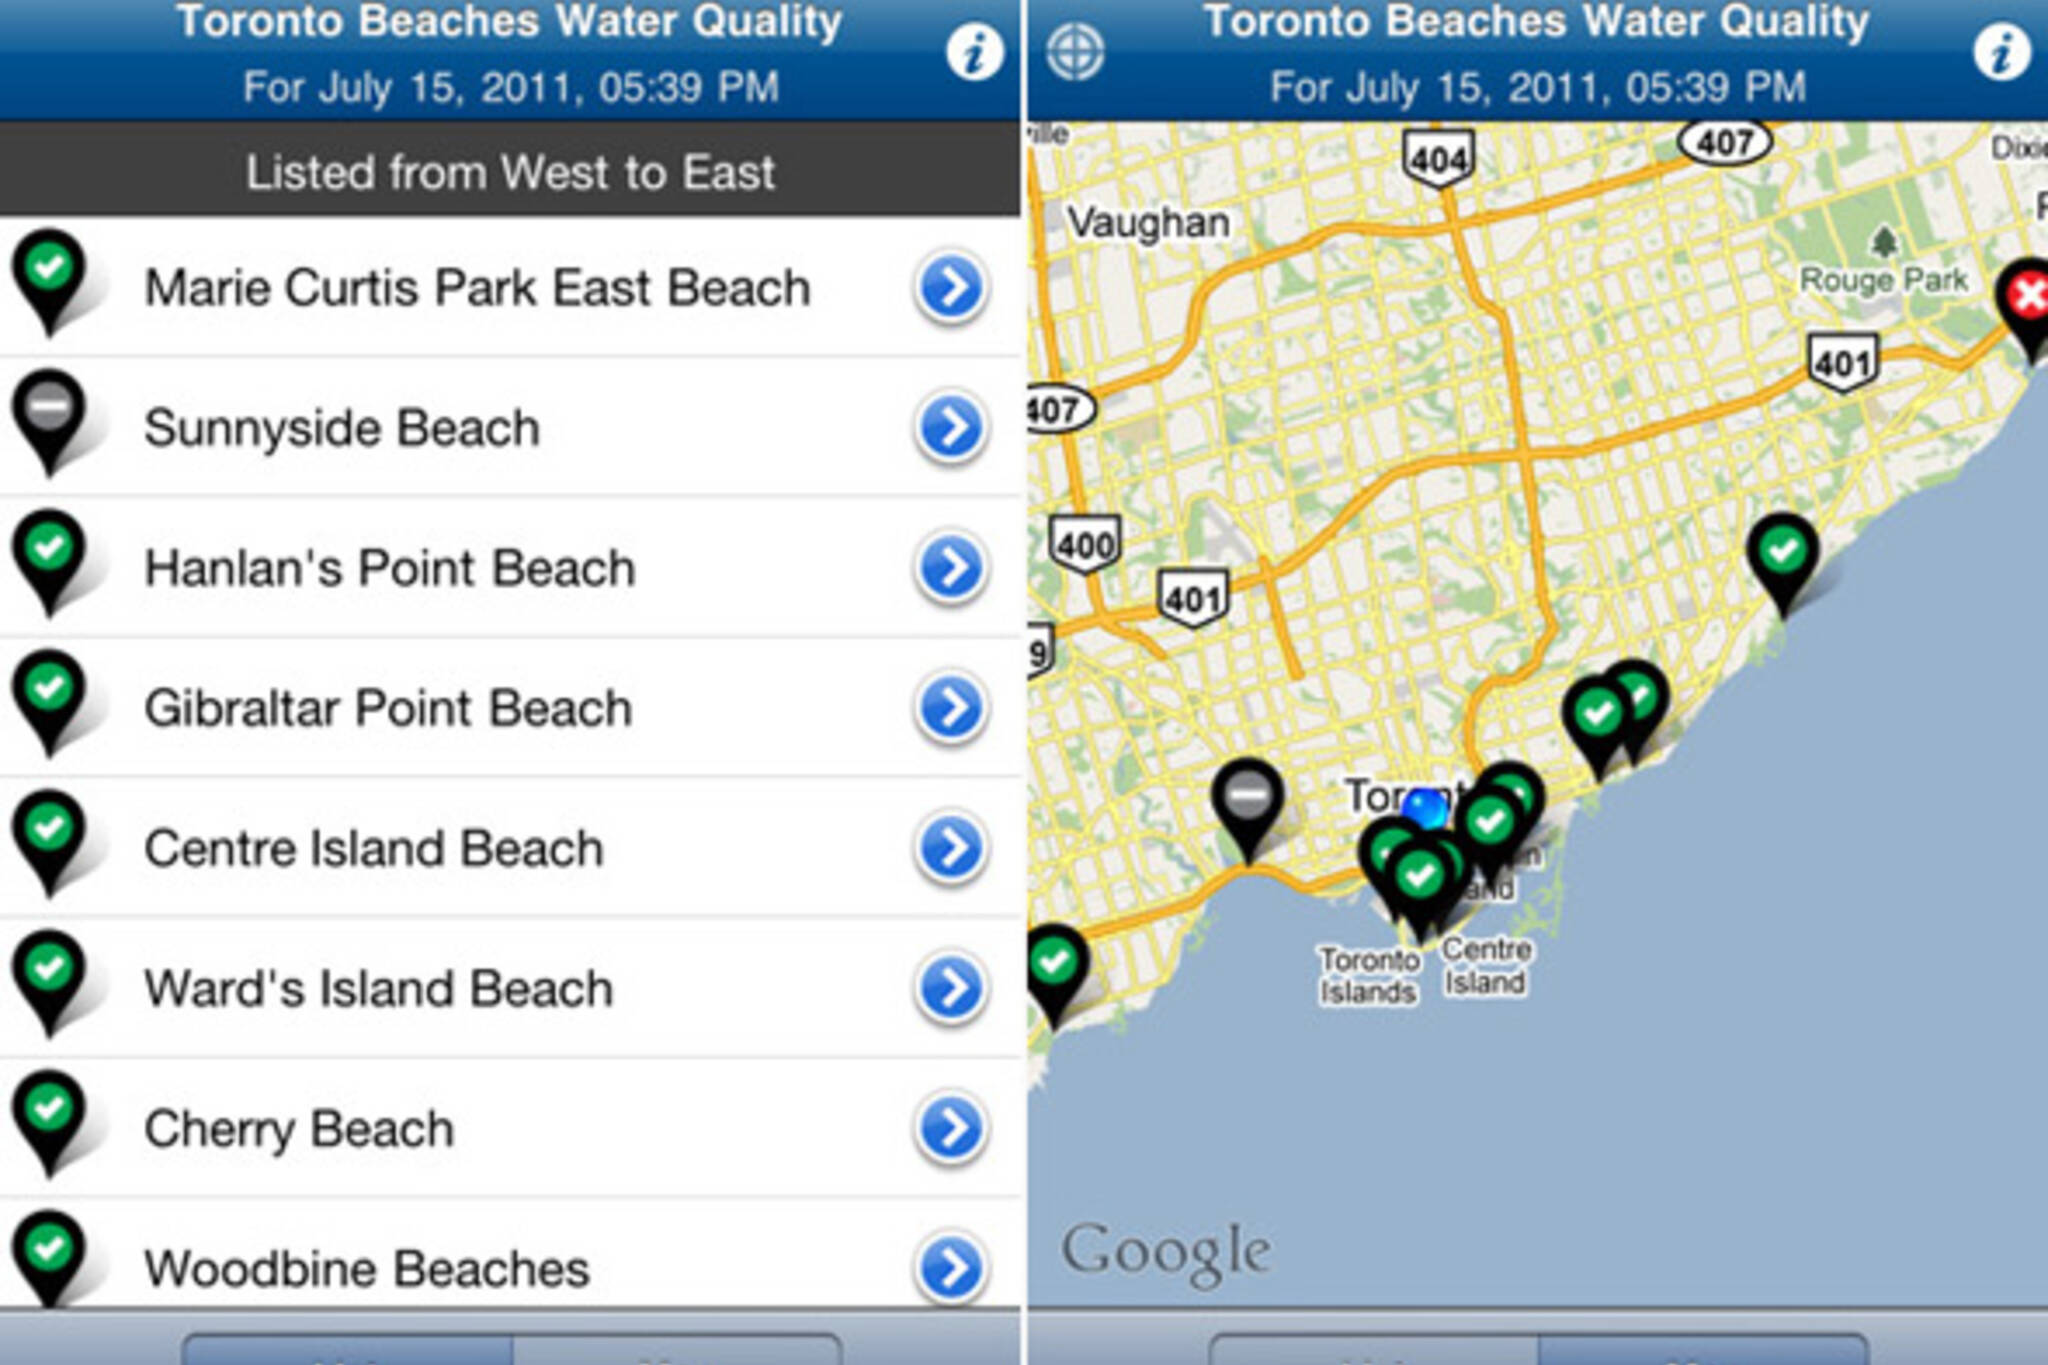 Toronto beaches water quality app